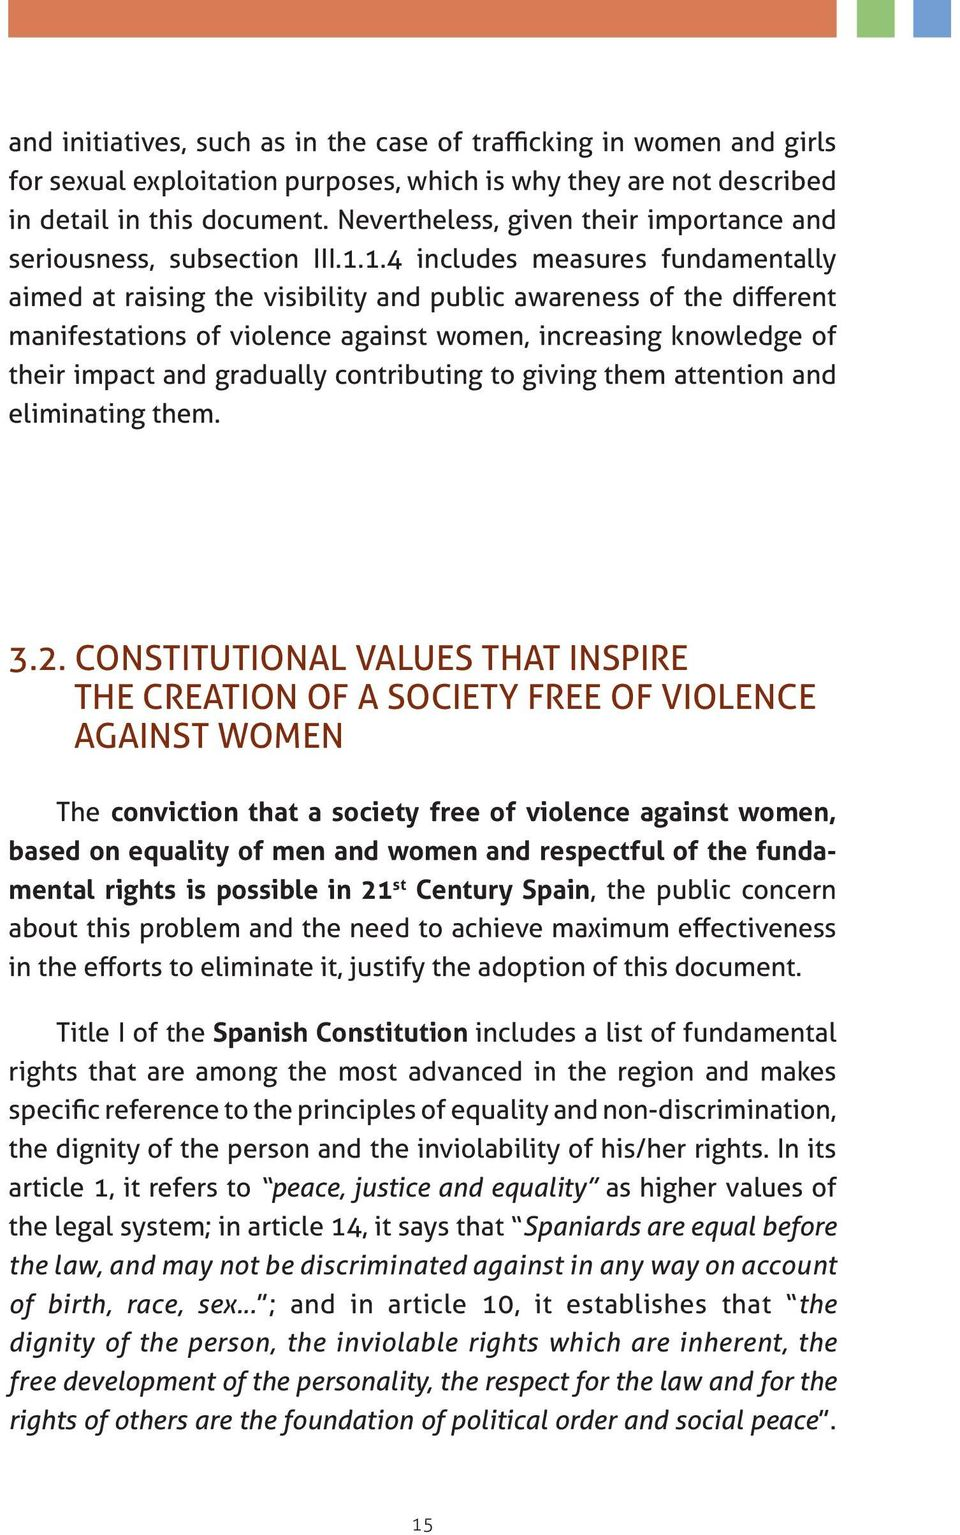 1.4 includes measures fundamentally aimed at raising the visibility and public awareness of the different manifestations of violence against women, increasing knowledge of their impact and gradually